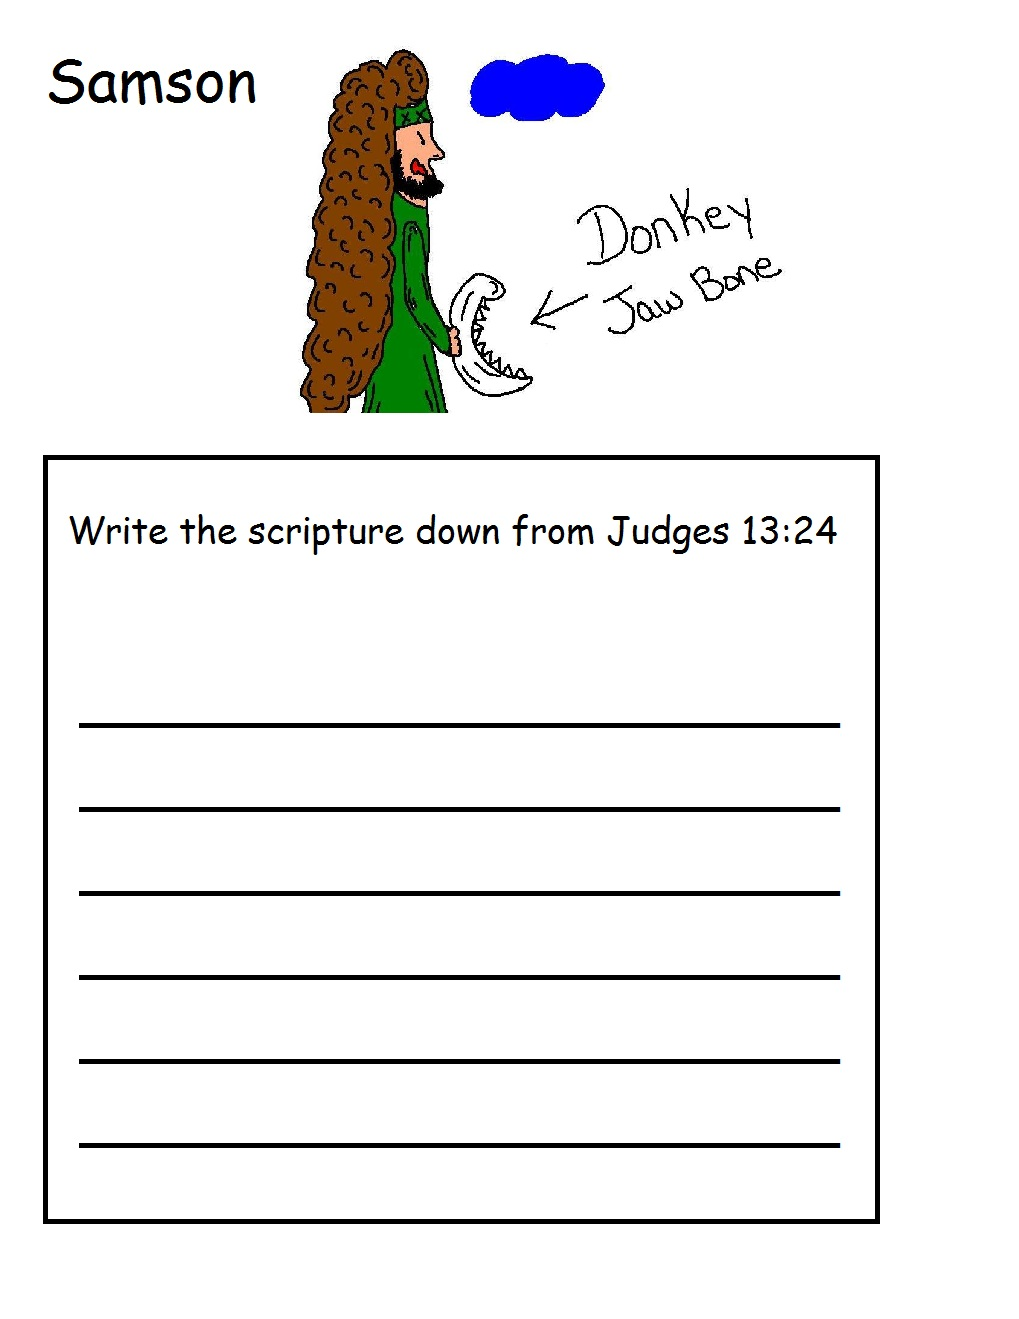 samson and delilah coloring pages eume - Samson Delilah Coloring Pages